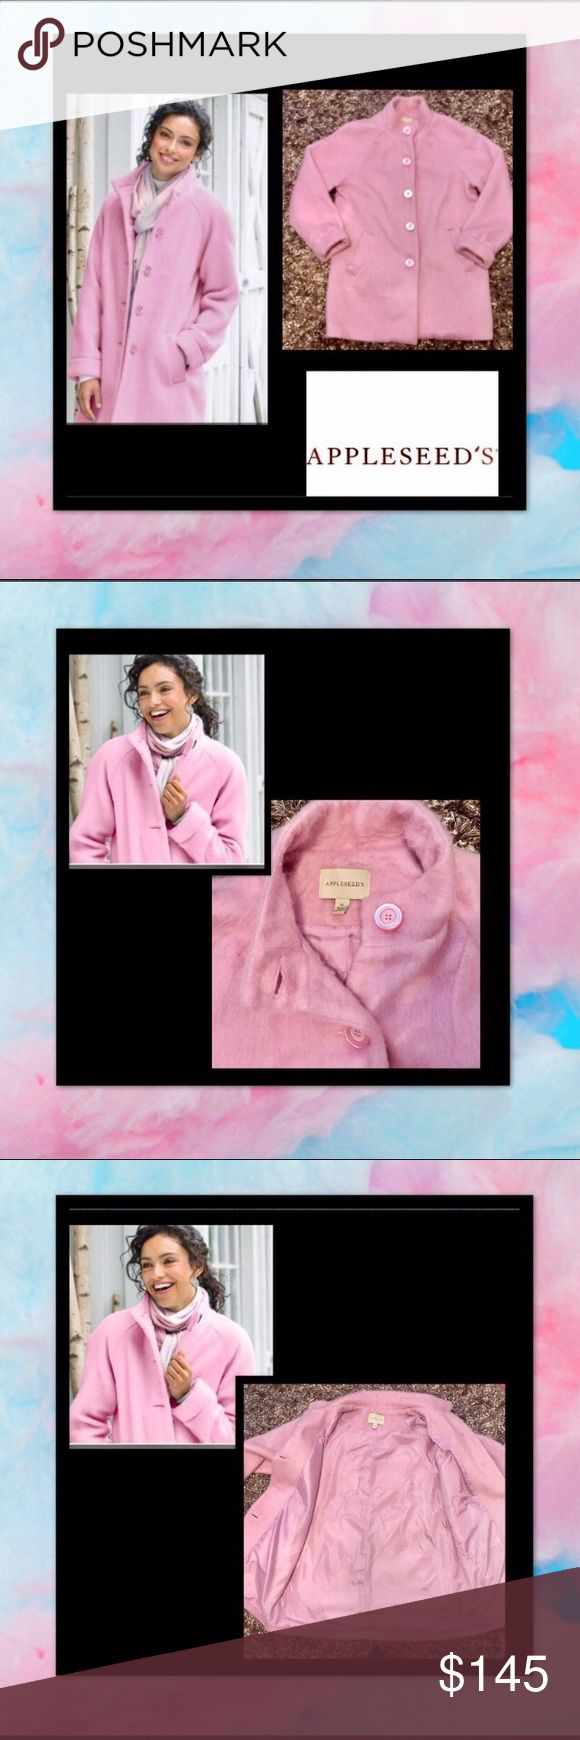 """Appleseeds🎀Light Pink🎀Cotton Candy🎀Fluff 🎀Coat So feminine🎀Light & Lofty Pink Carnation Fluff Coat🎀as light and airy as cotton candy🎀Flattering three-quarter length, in ultrasoft,lofty poly/acrylic/wool 🎀Stand collar 🎀raglan sleeves 🎀welt pockets 🎀turn-back cuff 🎀fully lined 🎀34""""L 🎀 🎀23""""armpit to armpit🎀sz 16 Appleseeds Jackets & Coats Puffers"""